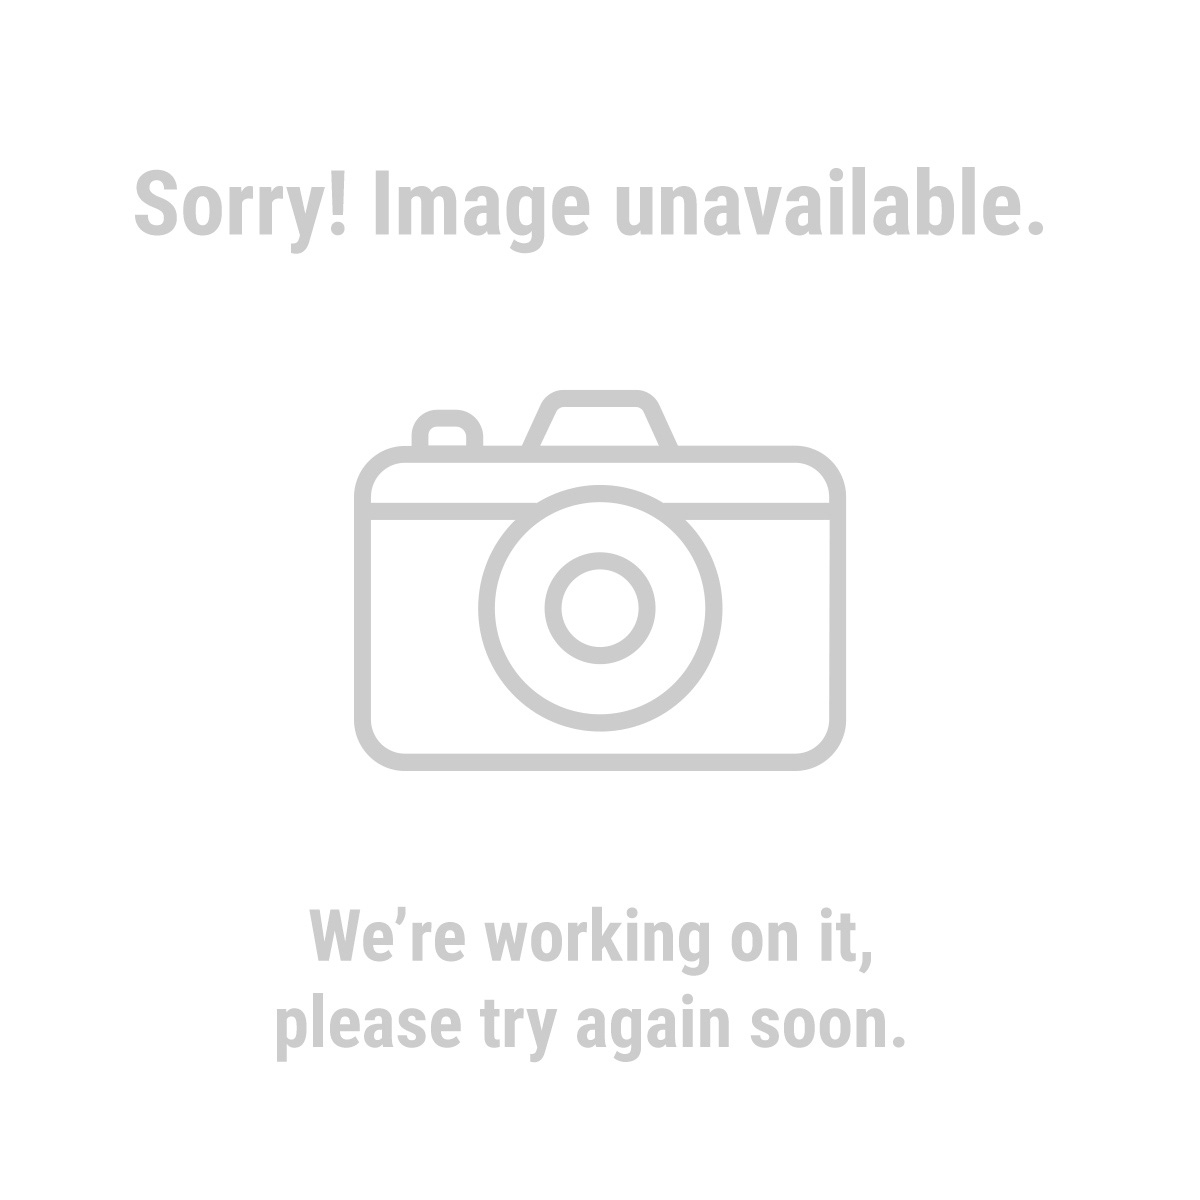 2 gal Home and Garden Sprayer